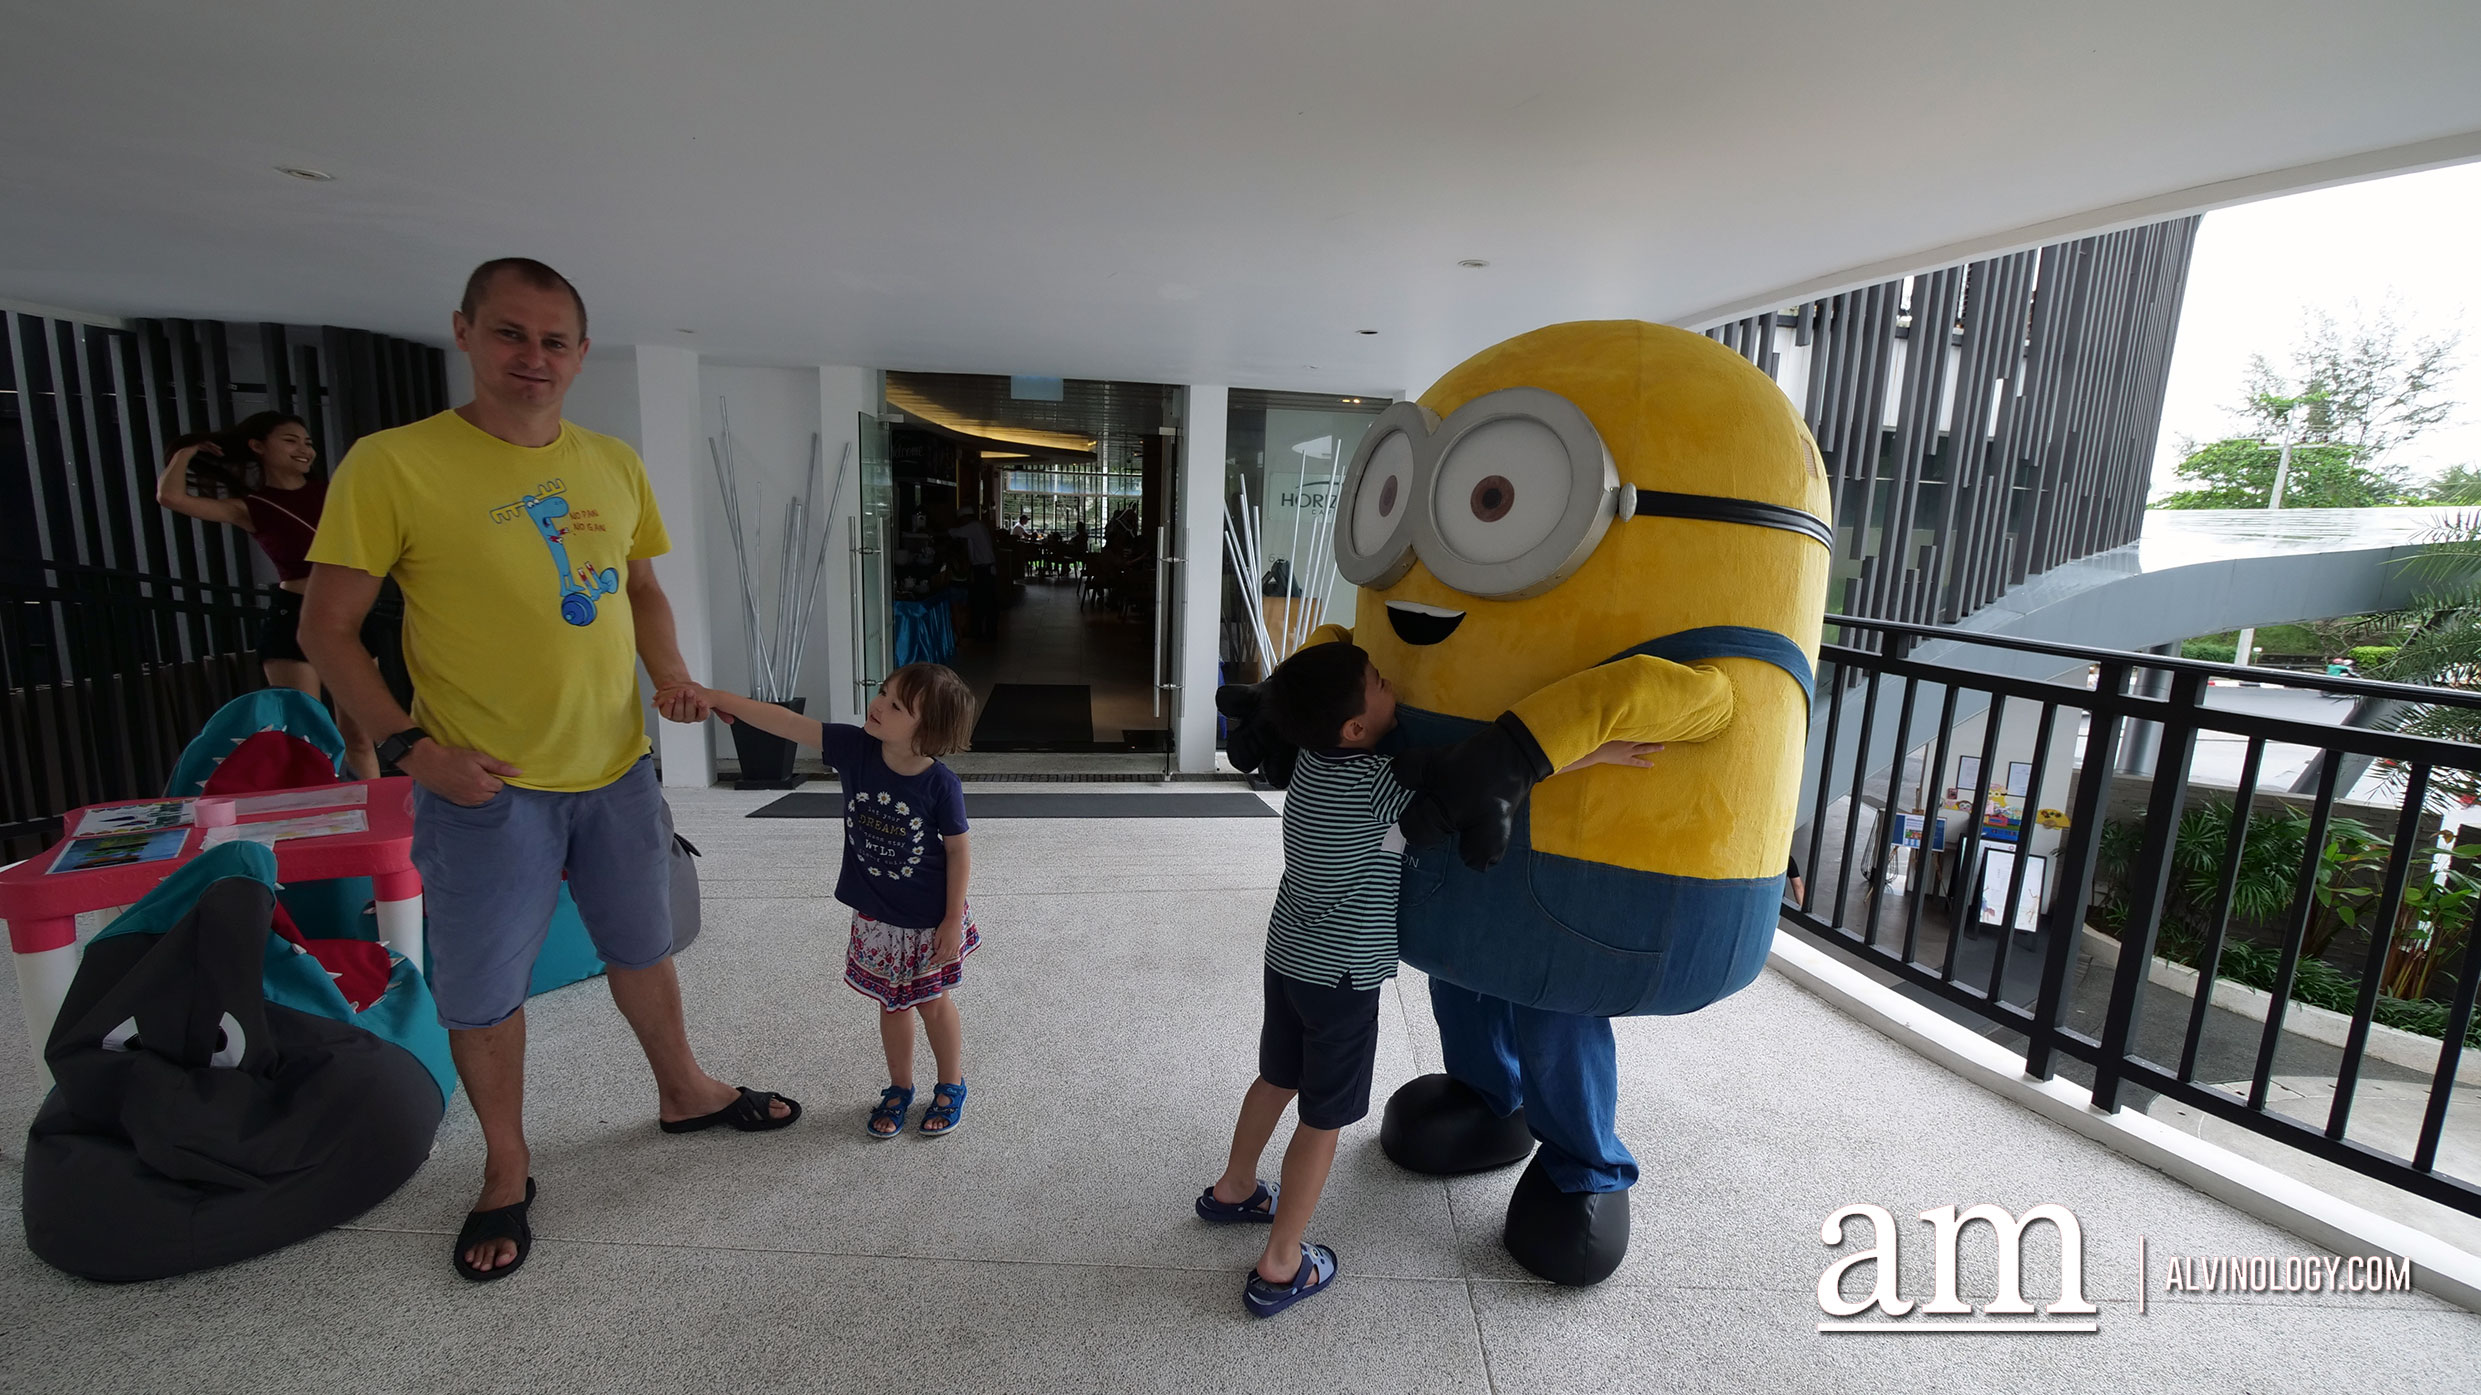 Meet and greet with costume characters like the Minions, Pikachu and more